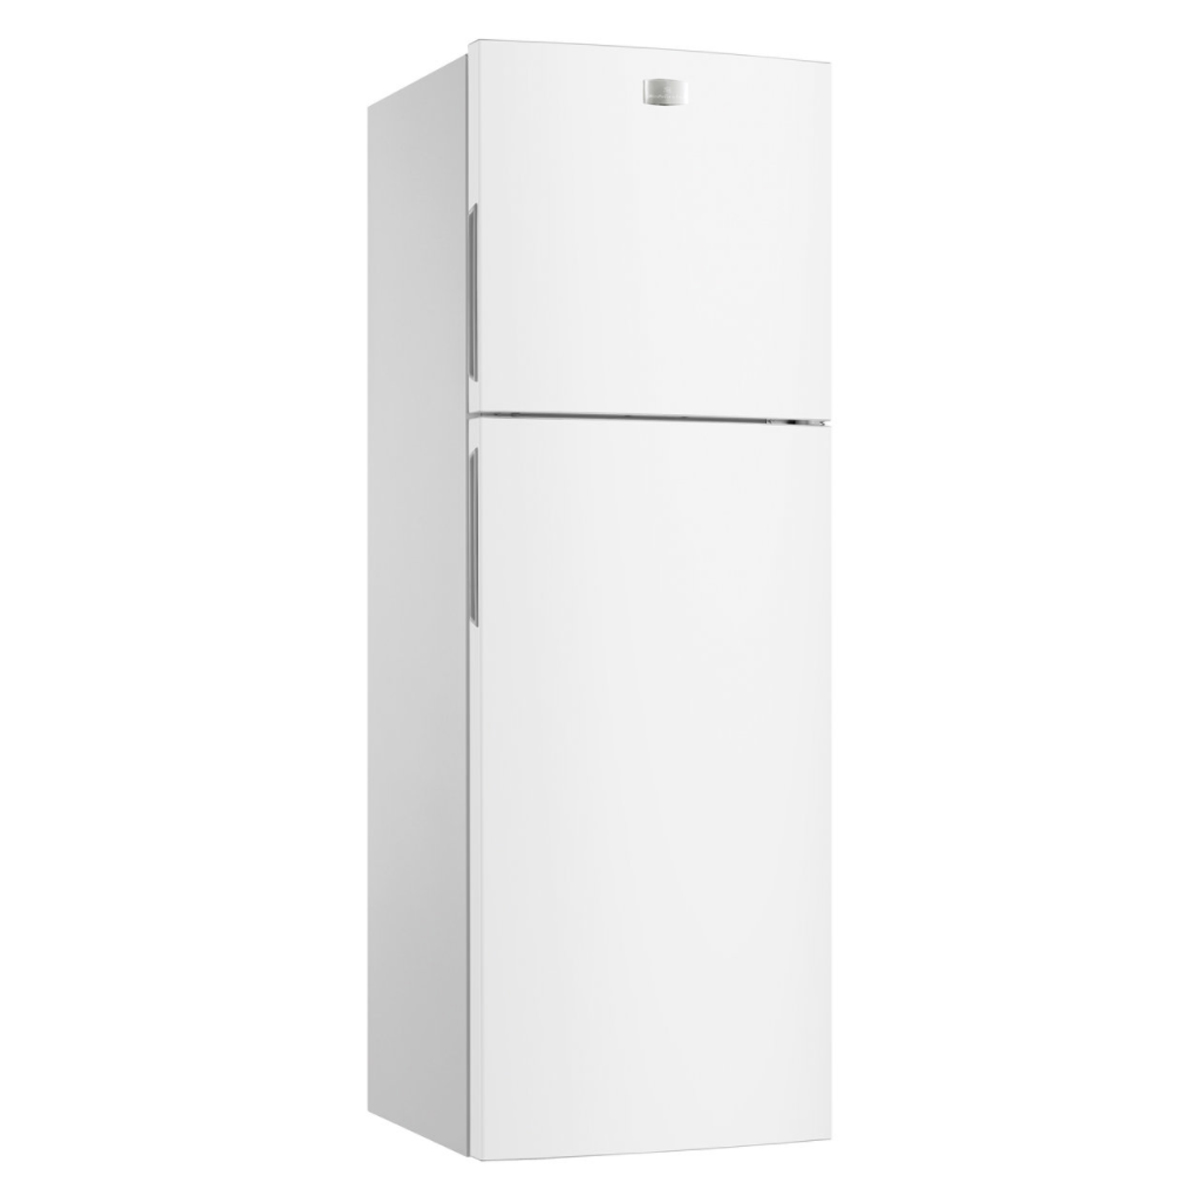 Kelvinator KTB2802WA 275L Top Mount Fridge